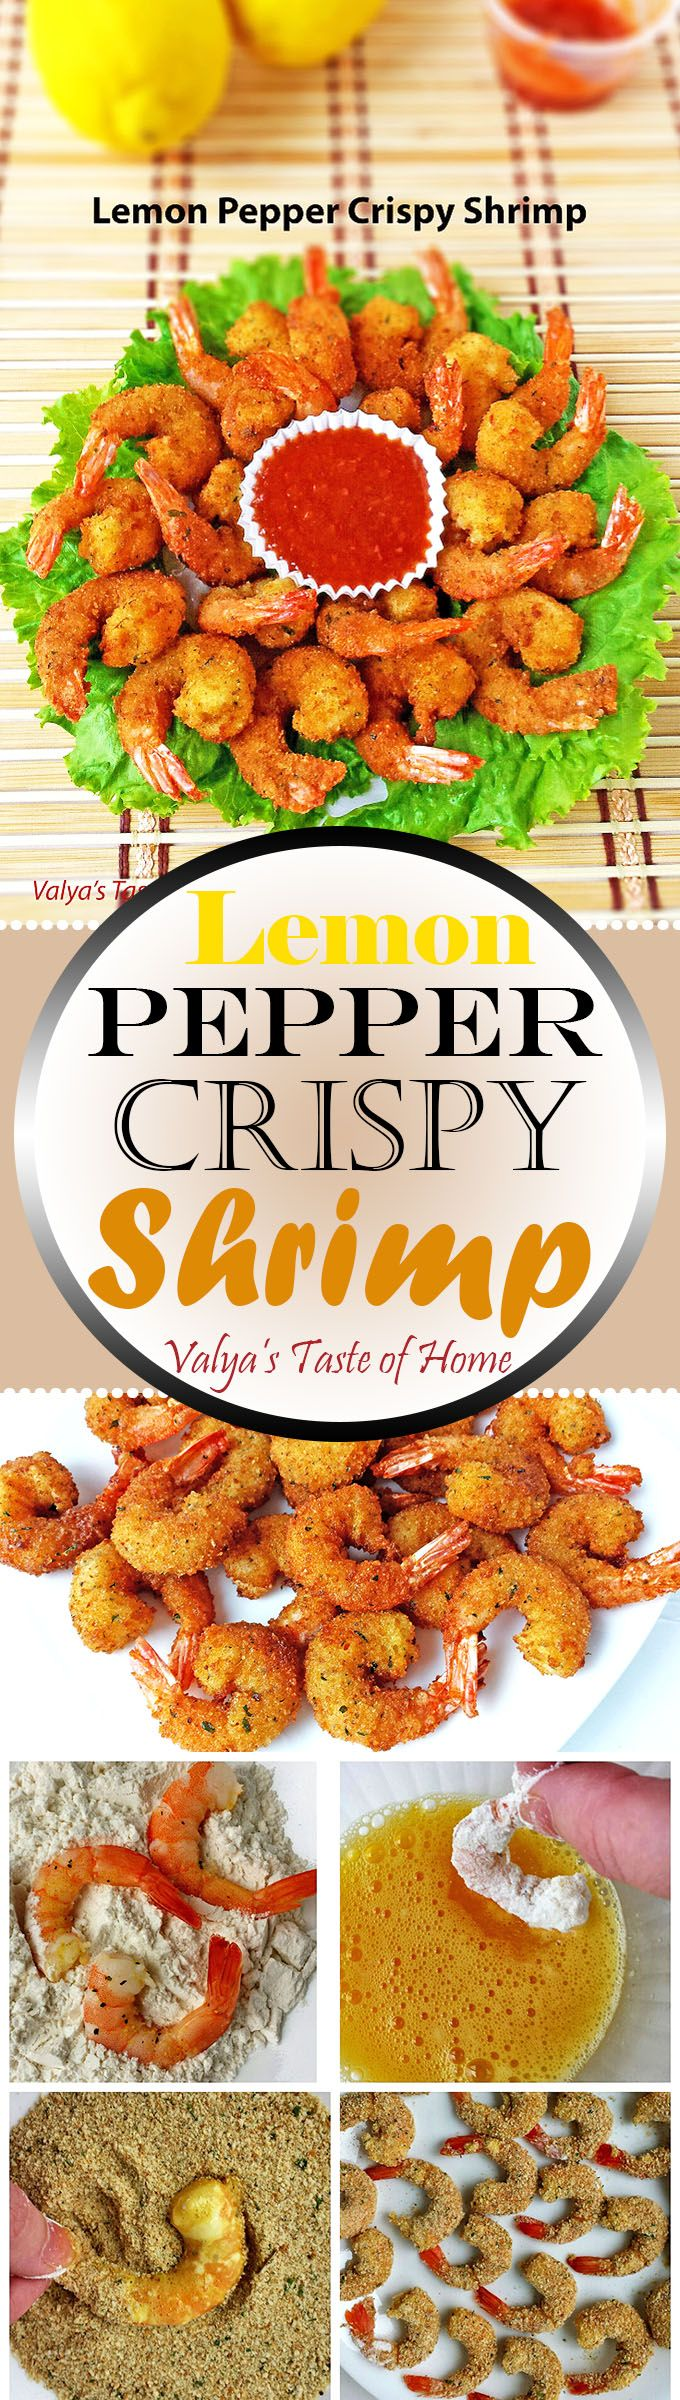 These shrimps are so easy to prepare, but they taste so delicious. It can be a perfect appetizer or side dish. Crunchy, very juicy and so tasty your family will be surprised.